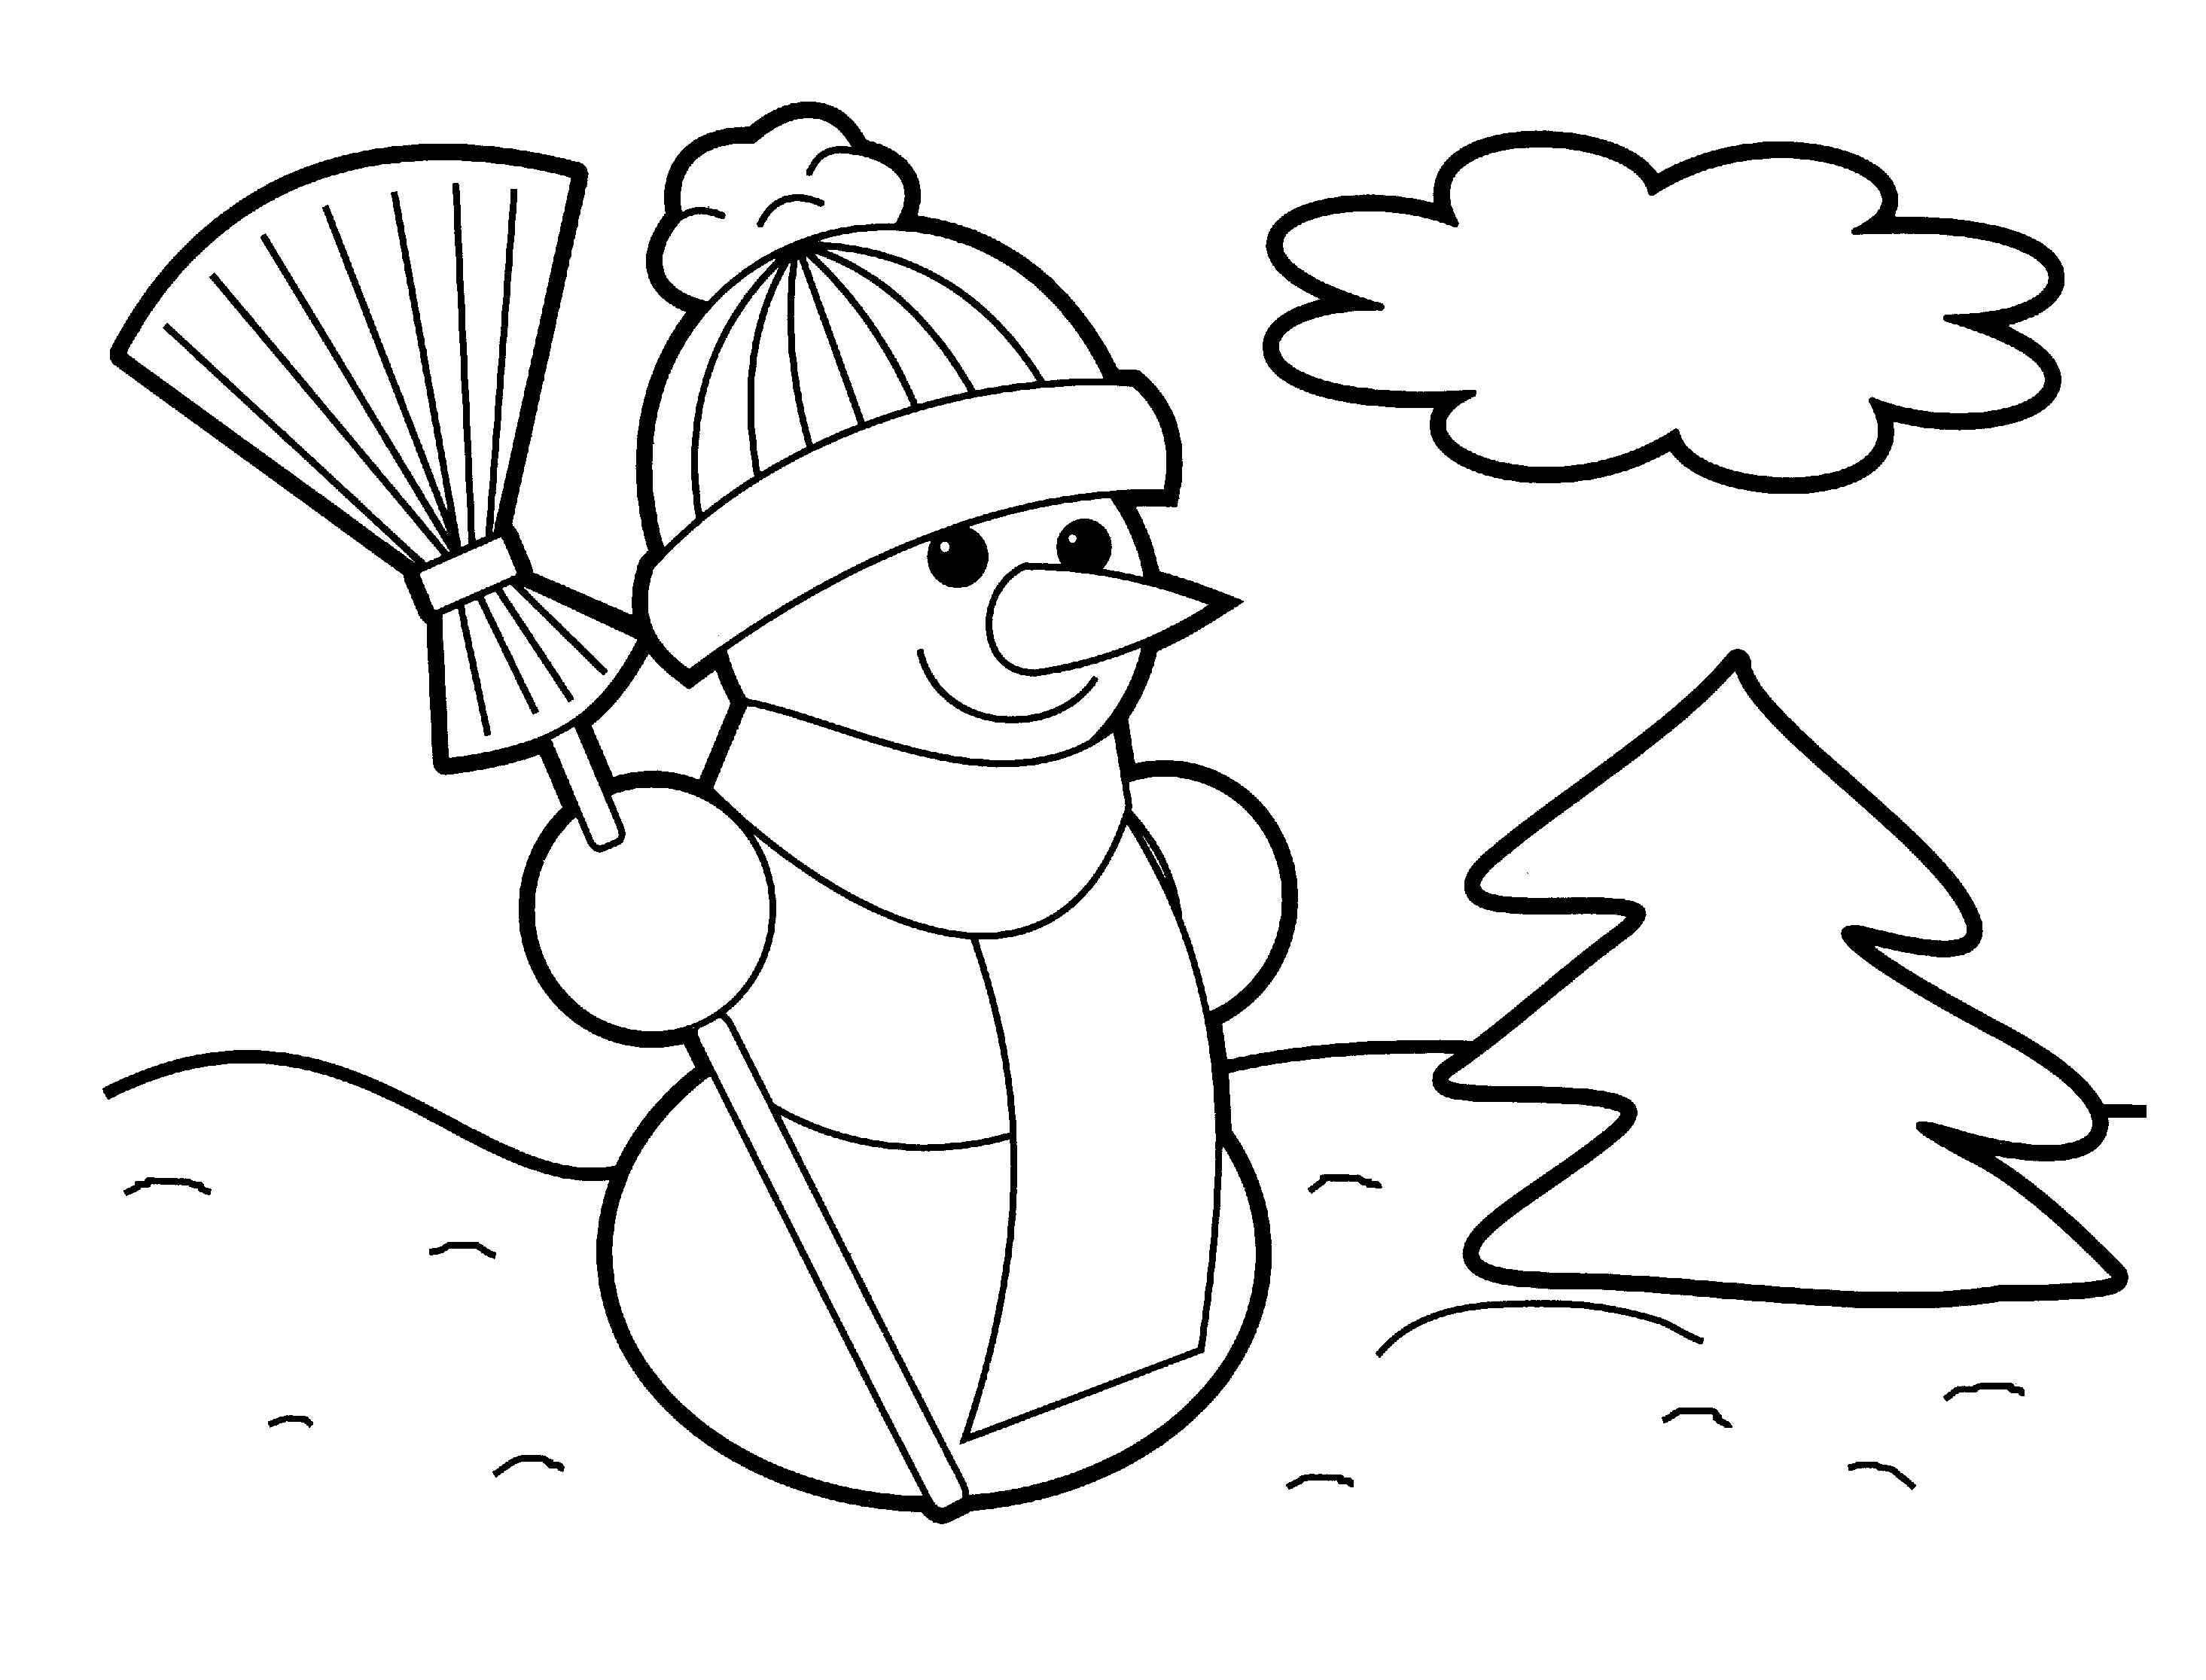 Christmas Coloring Pages For Kids To Print Out  Christmas Coloring Pages 1